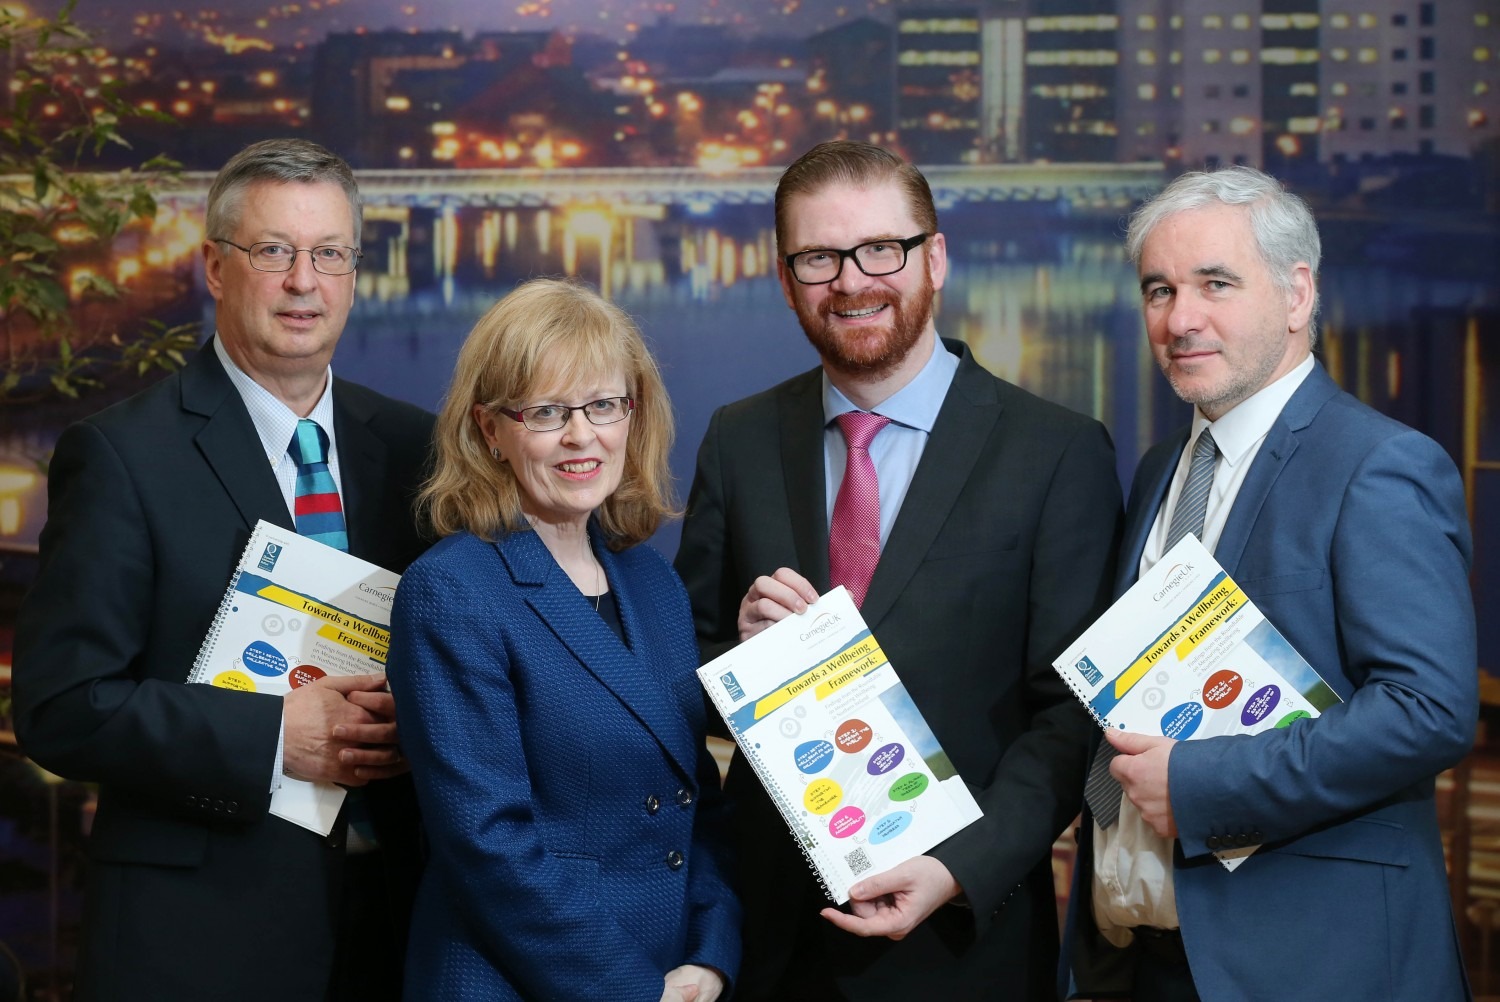 Putting wellbeing at the heart of governance in Northern Ireland